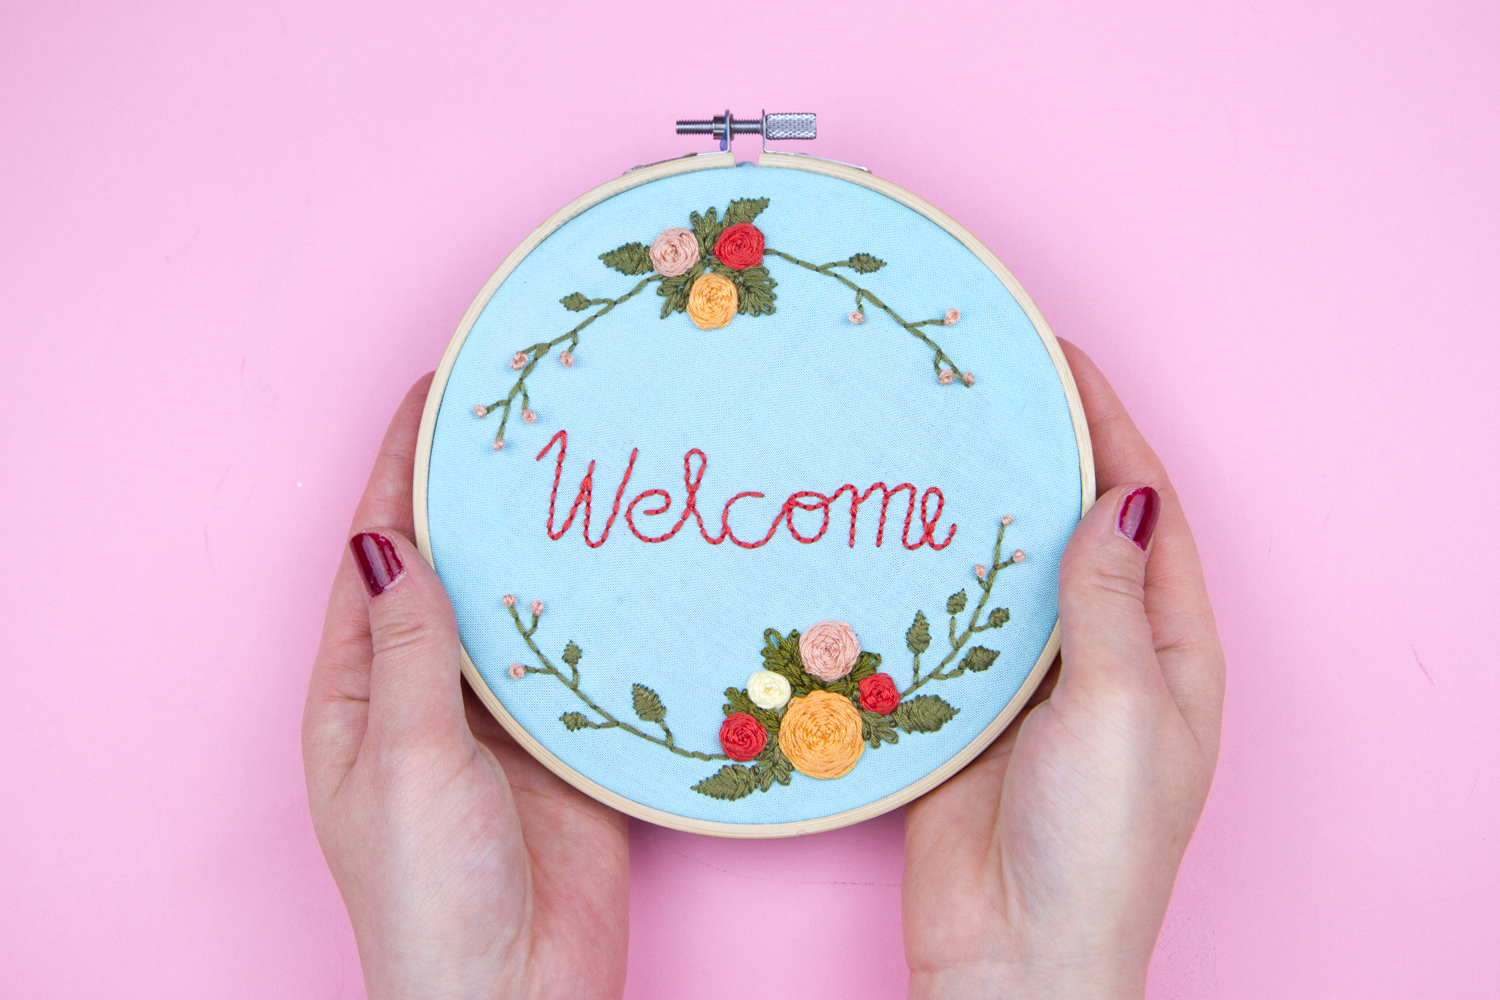 embroidery-welcome.jpg